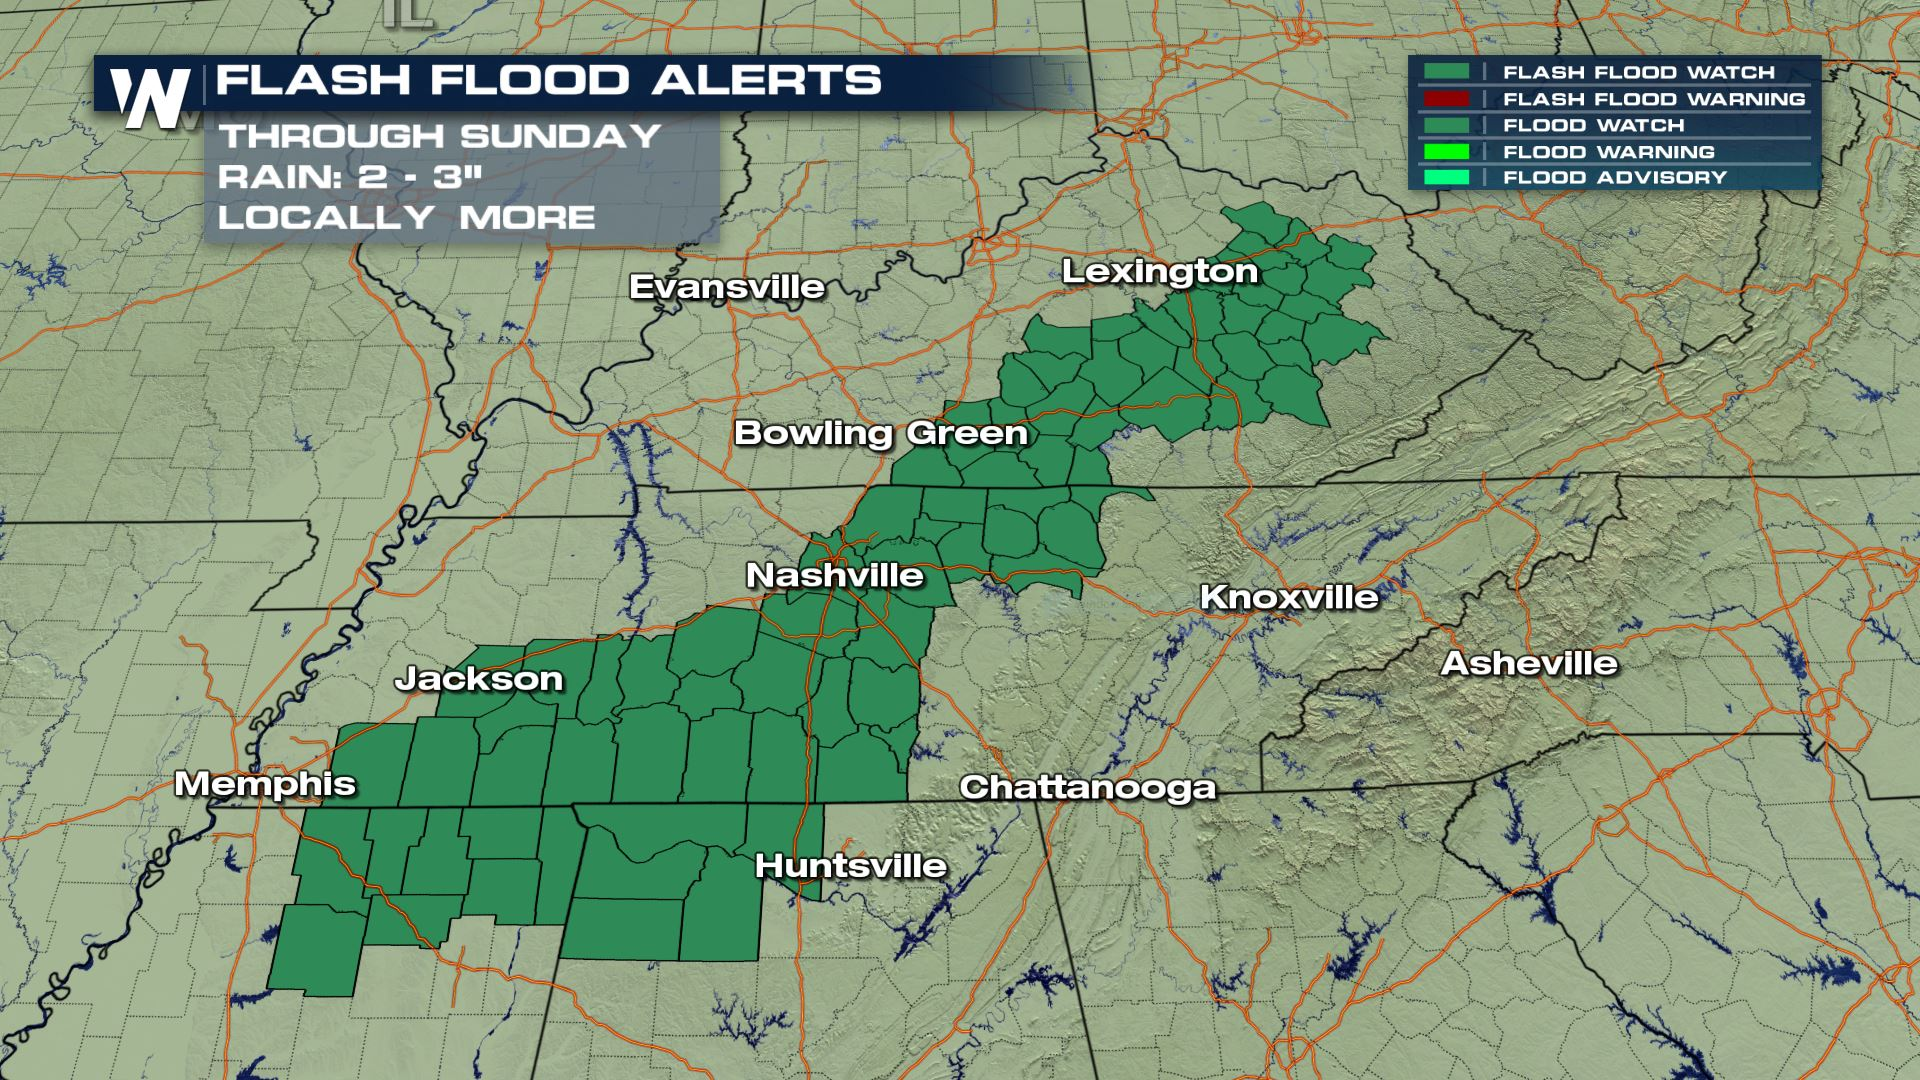 Flooding likely across parts of the Tennessee River Valley Sunday